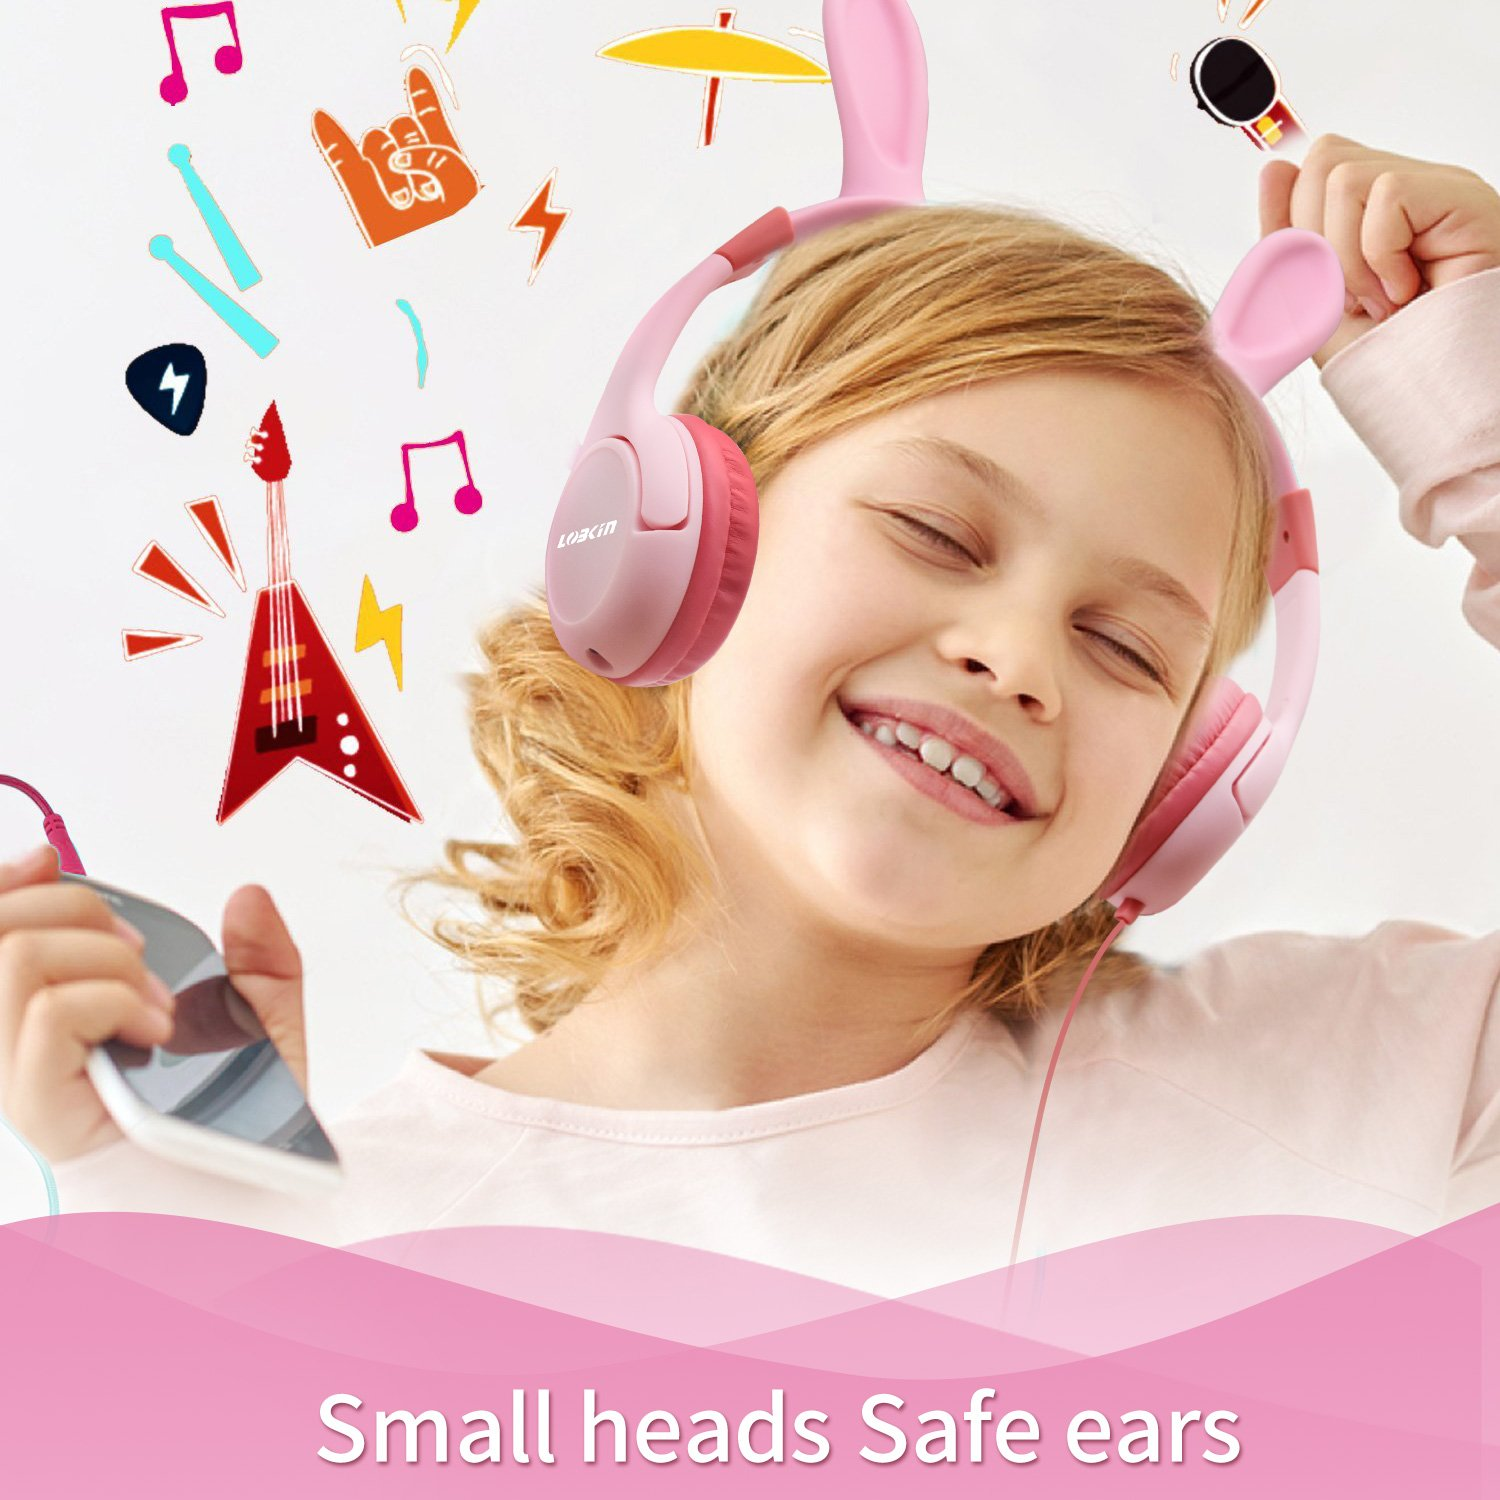 LOBKIN Kids Headphones, Kids Bunny Ears Headsets Wired On-Ear Headphones Food Grade Silicone Safe for Children with 85dB Volume Limited Hearing Protection & Music Sharing Function (PINK(Bunny Ears))